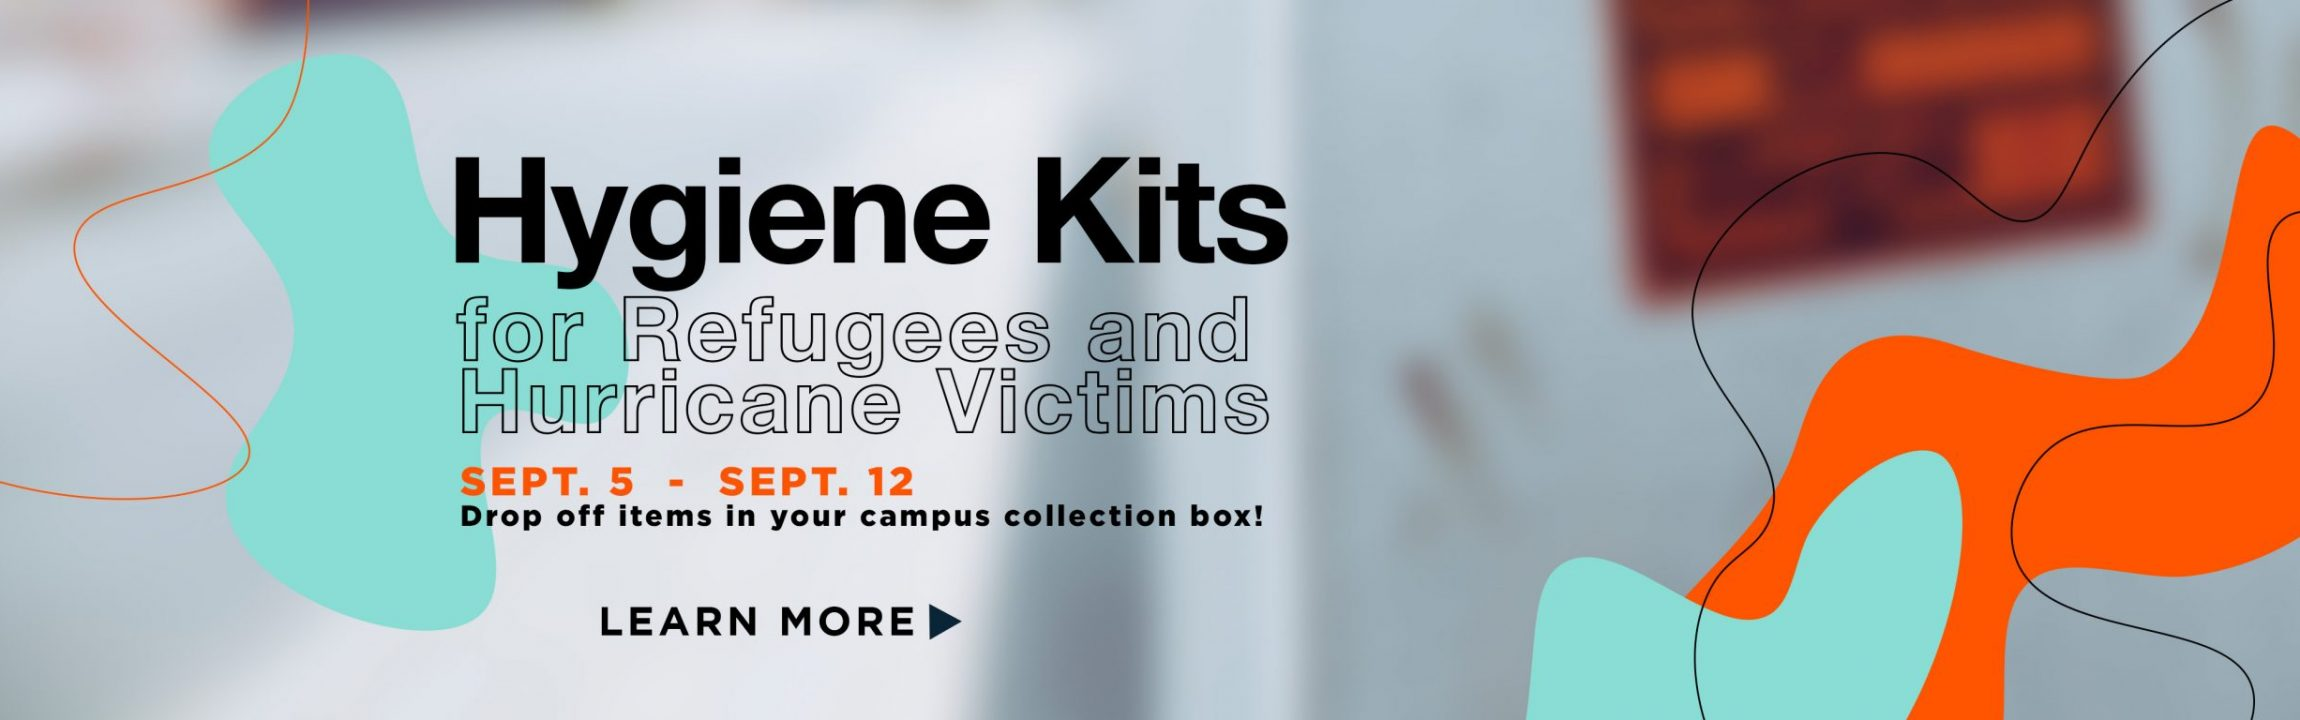 hygiene kits hurricane and refugees - feature